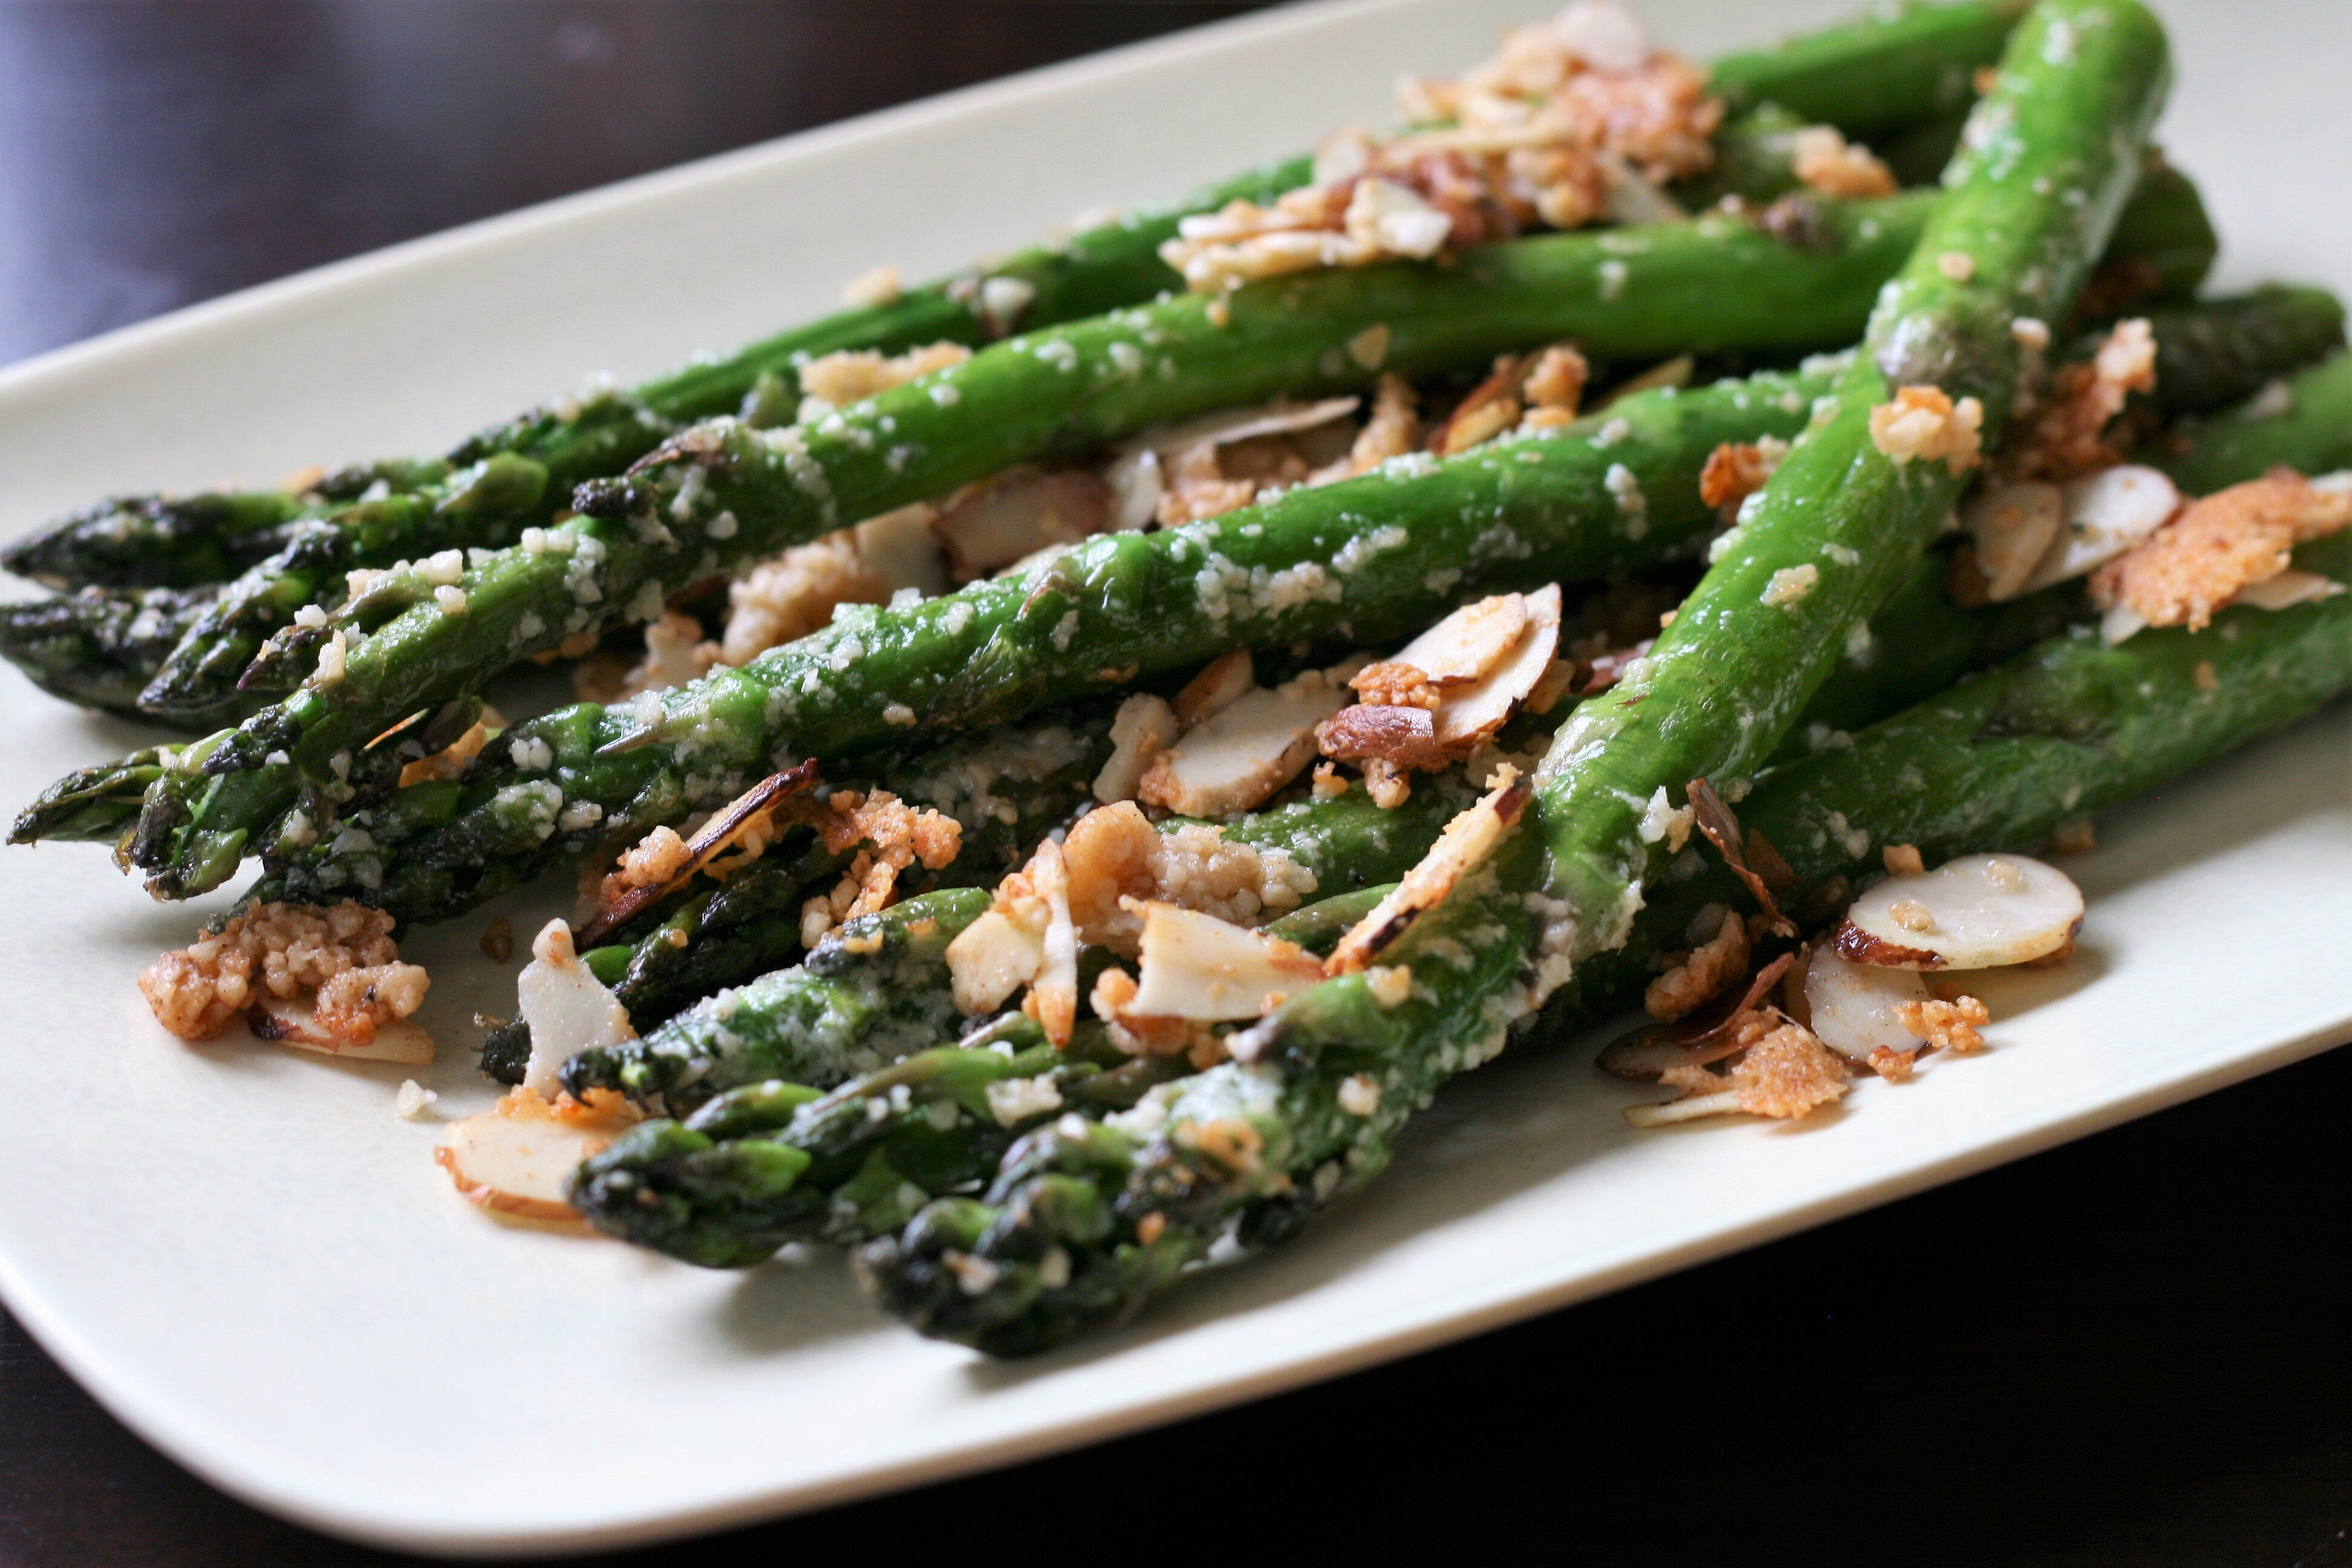 back to asparagus with sliced almonds and parmesan cheese recipe